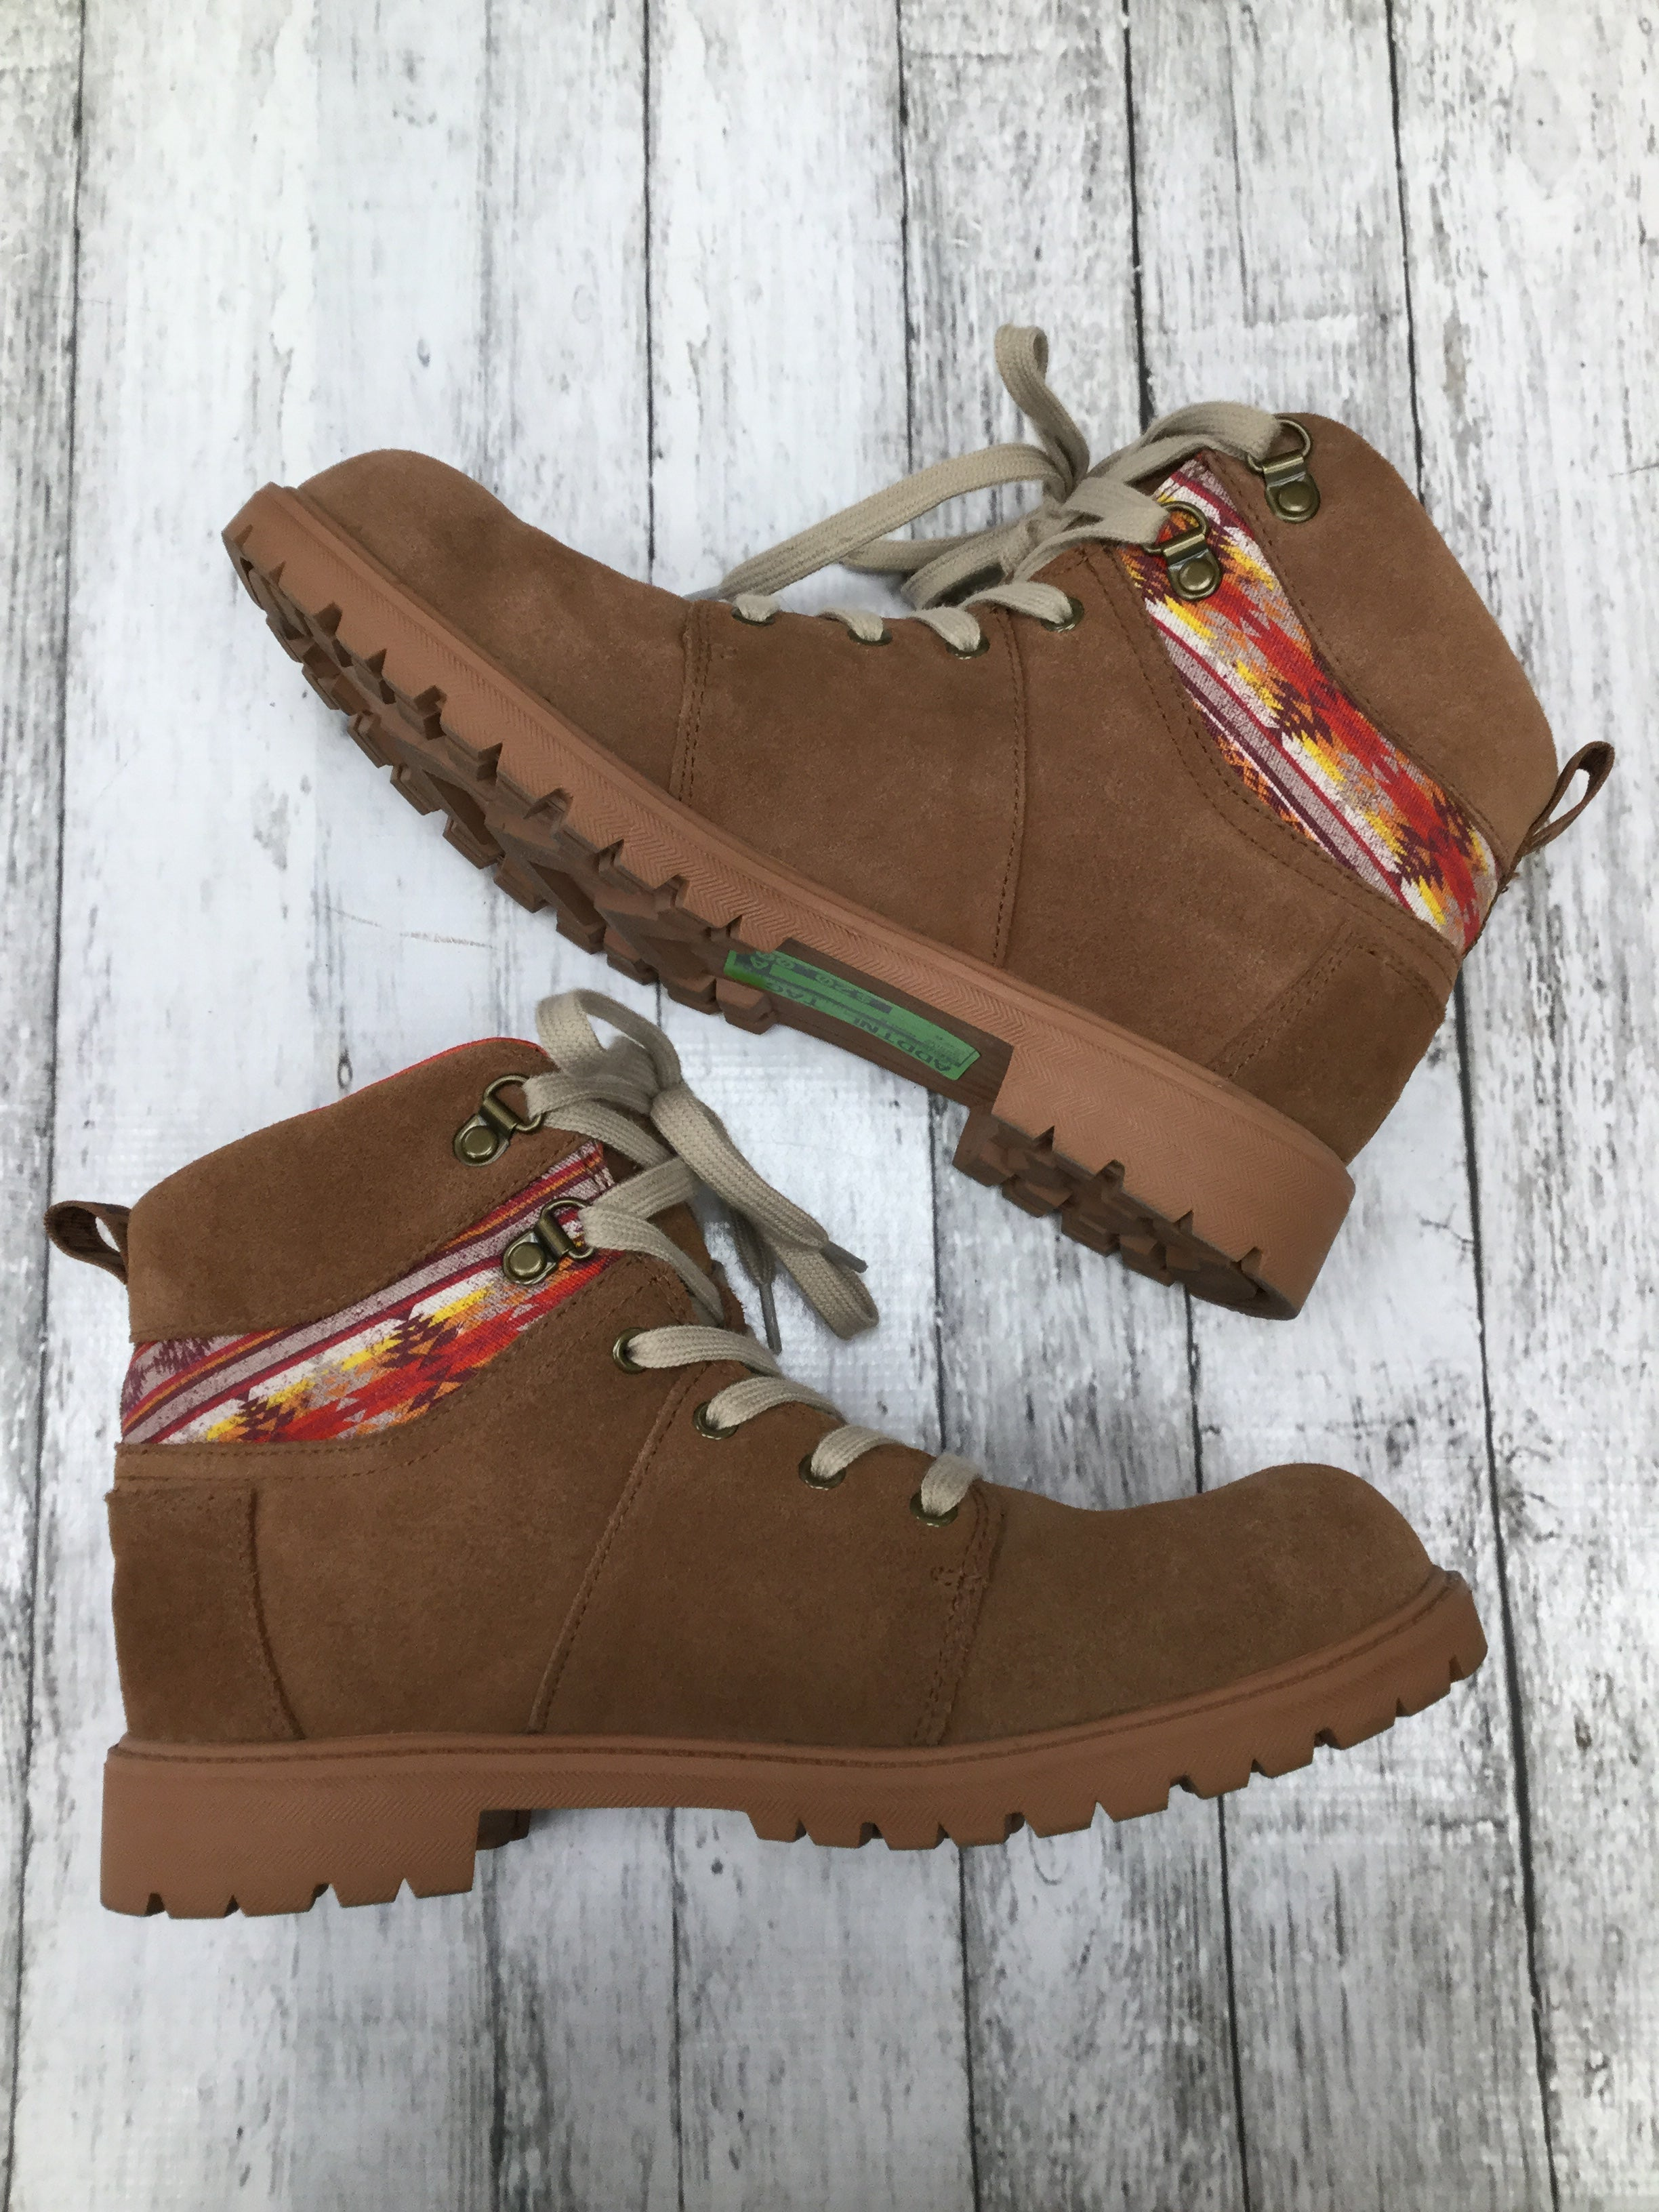 Primary Photo - BRAND: TOMS , STYLE: BOOTS ANKLE , COLOR: BROWN , SIZE: 6 , SKU: 105-2768-29393